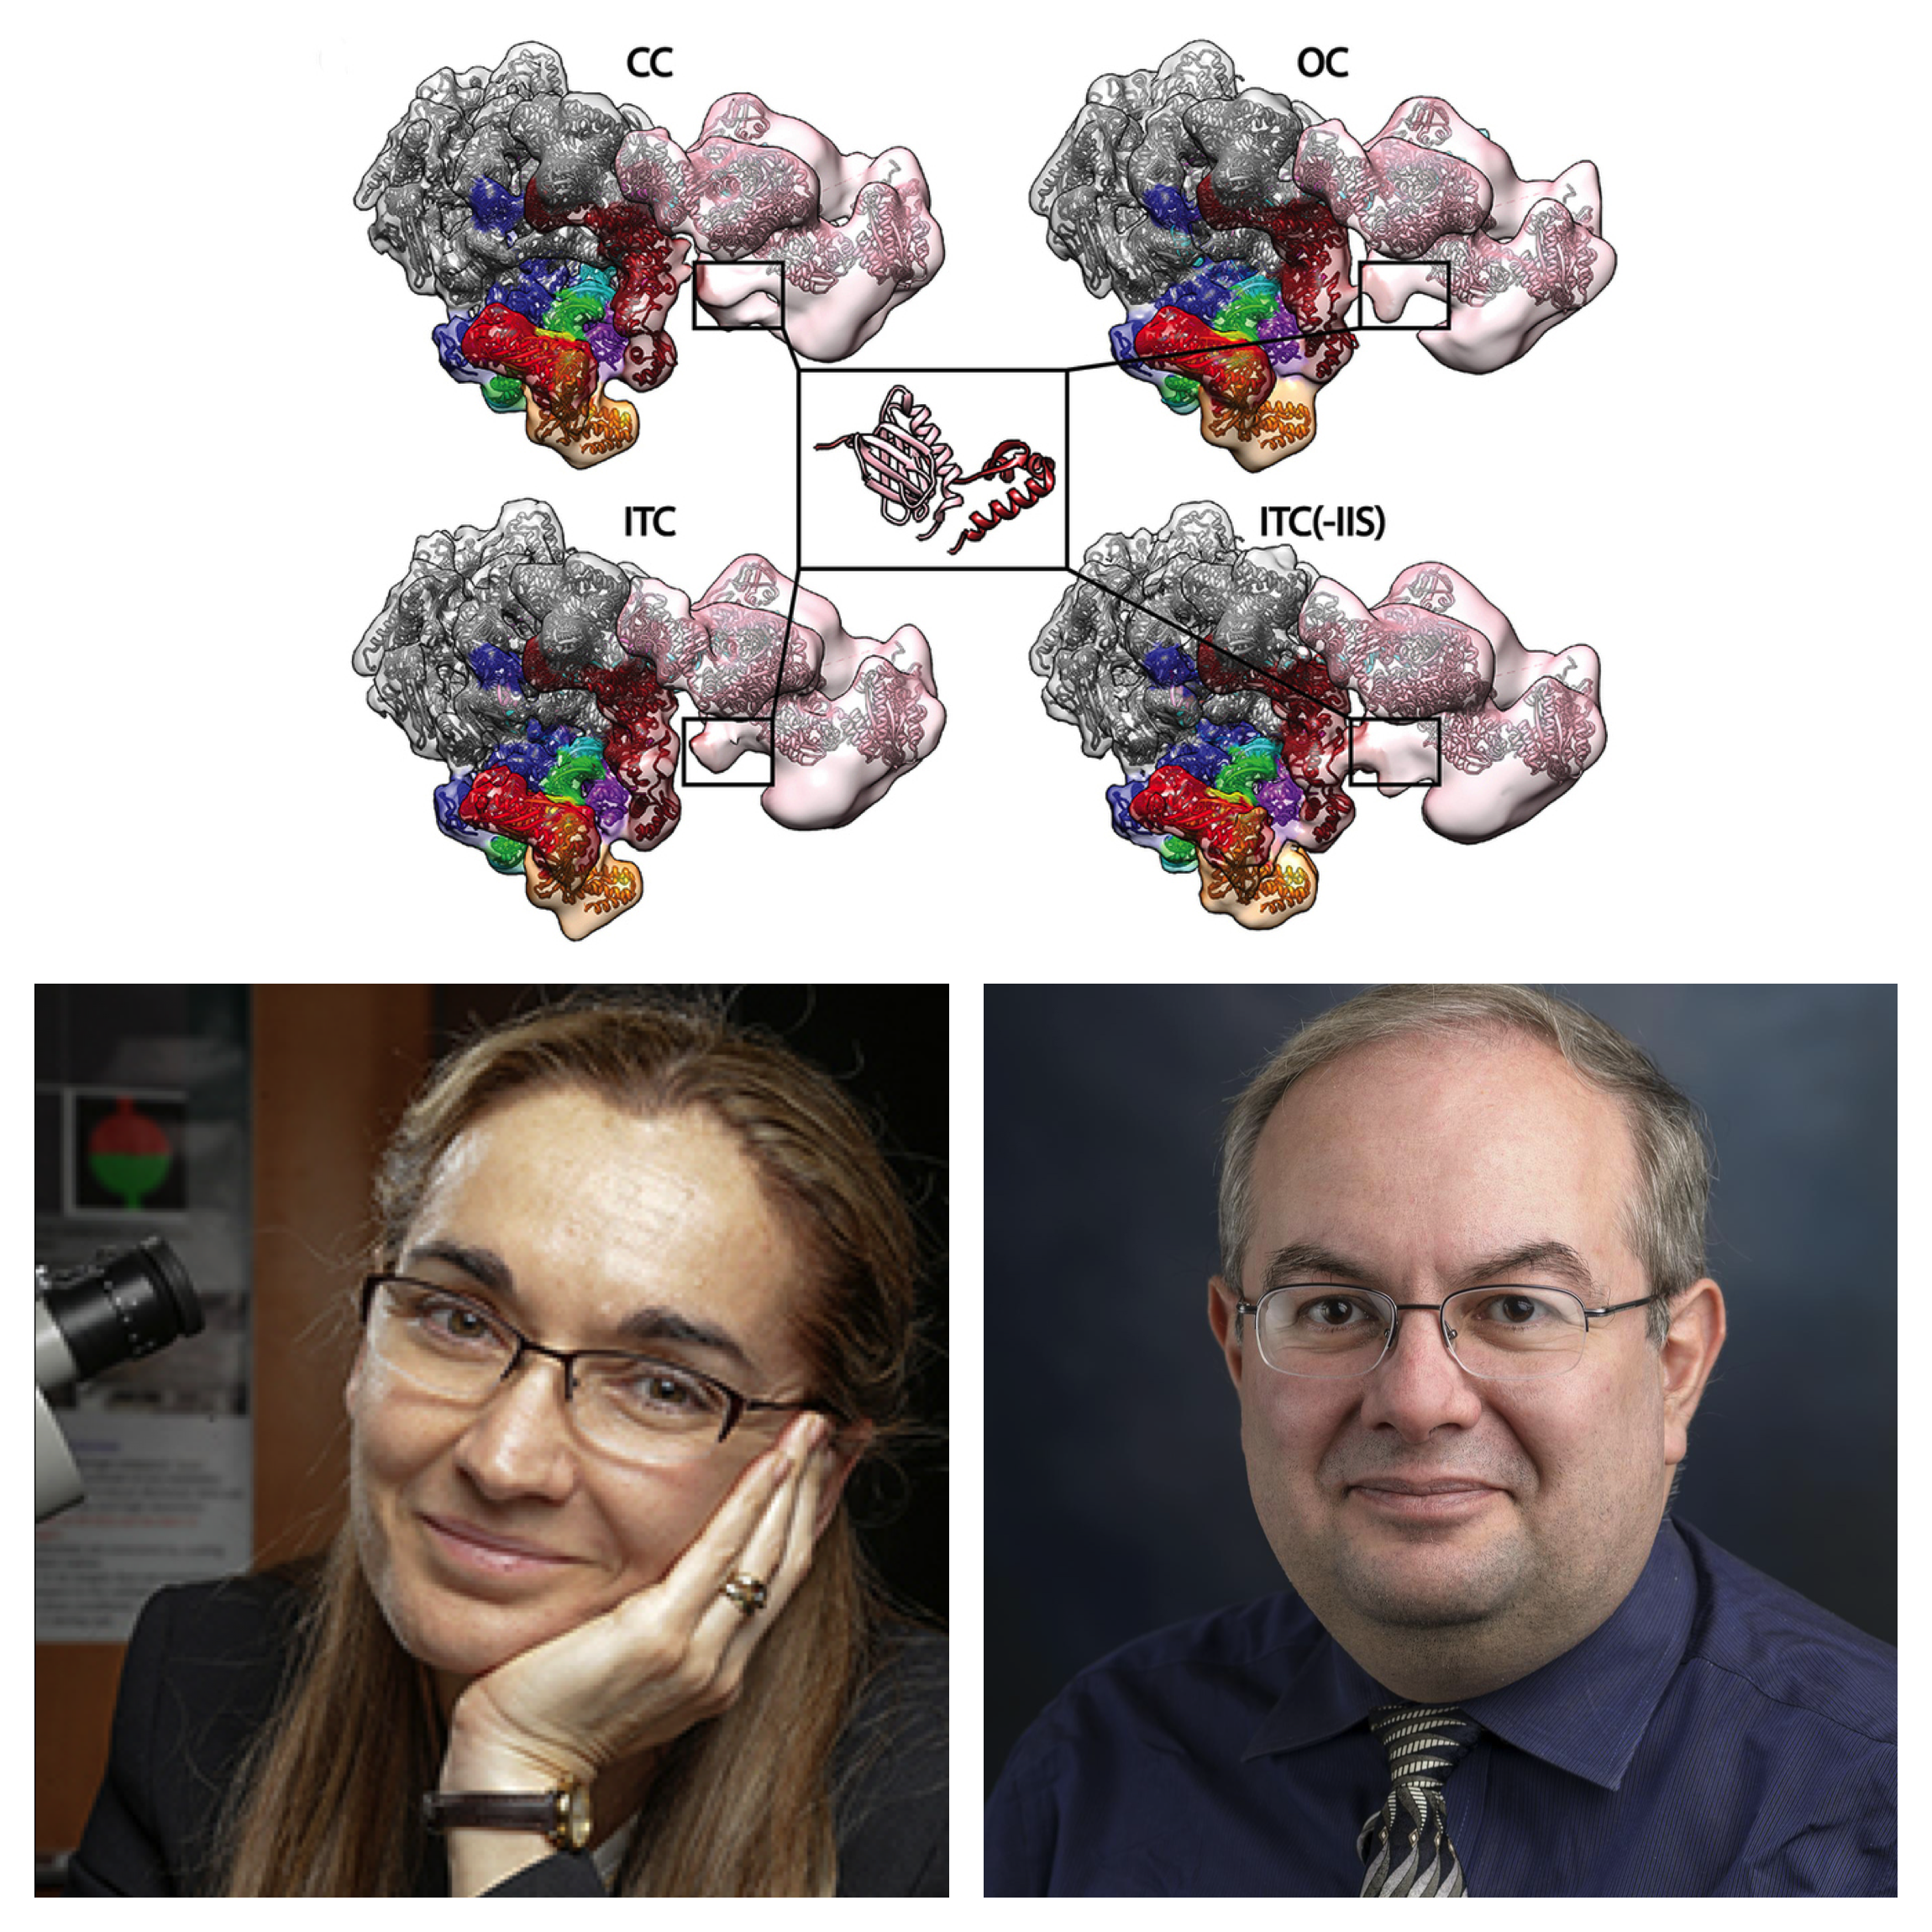 Caption: Eva Nogales, UC Berkeley and Ivaylo Ivanov, Georgia State University, make discoveries on one of life's most important 'living machines.'